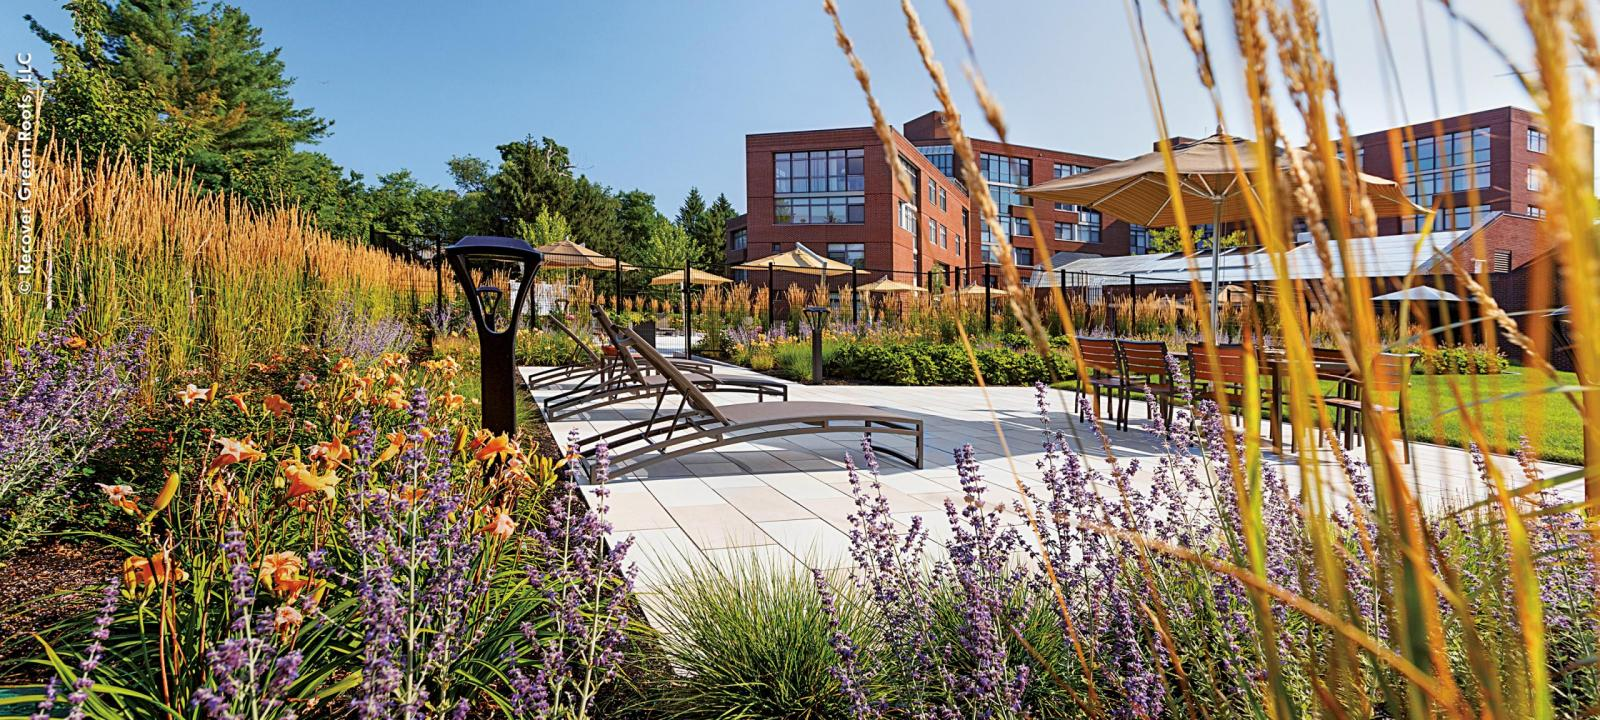 Roof garden with deckchairs, perennials, ornamental grasses